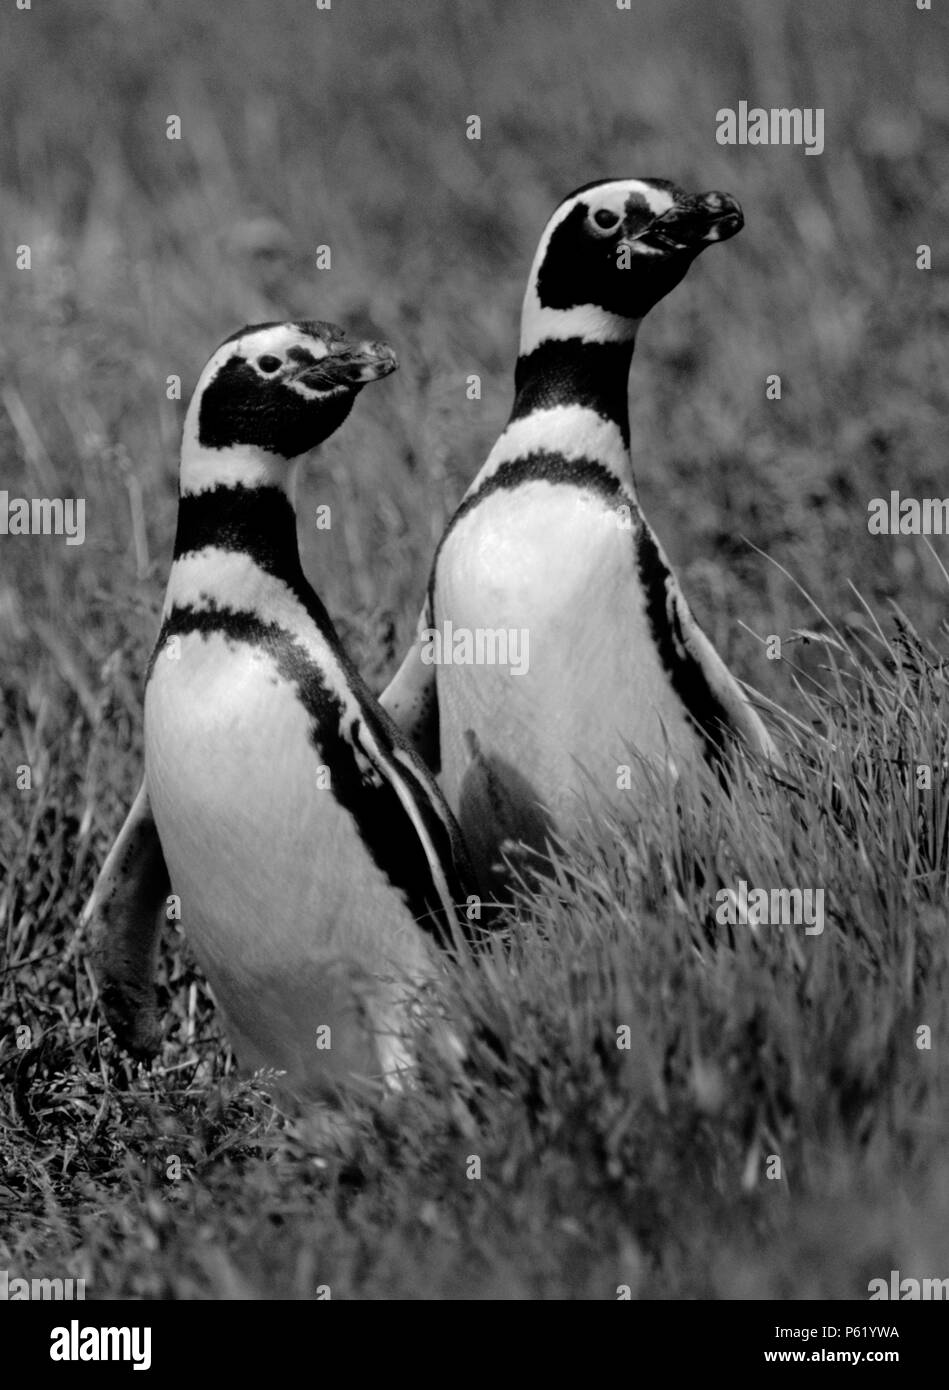 MEGALLANIC PENGUINS mate for life like this couple in the SENO OTWAY COLONY with 50,000 breeding pairs - PATAGONIA CHILE - Stock Image